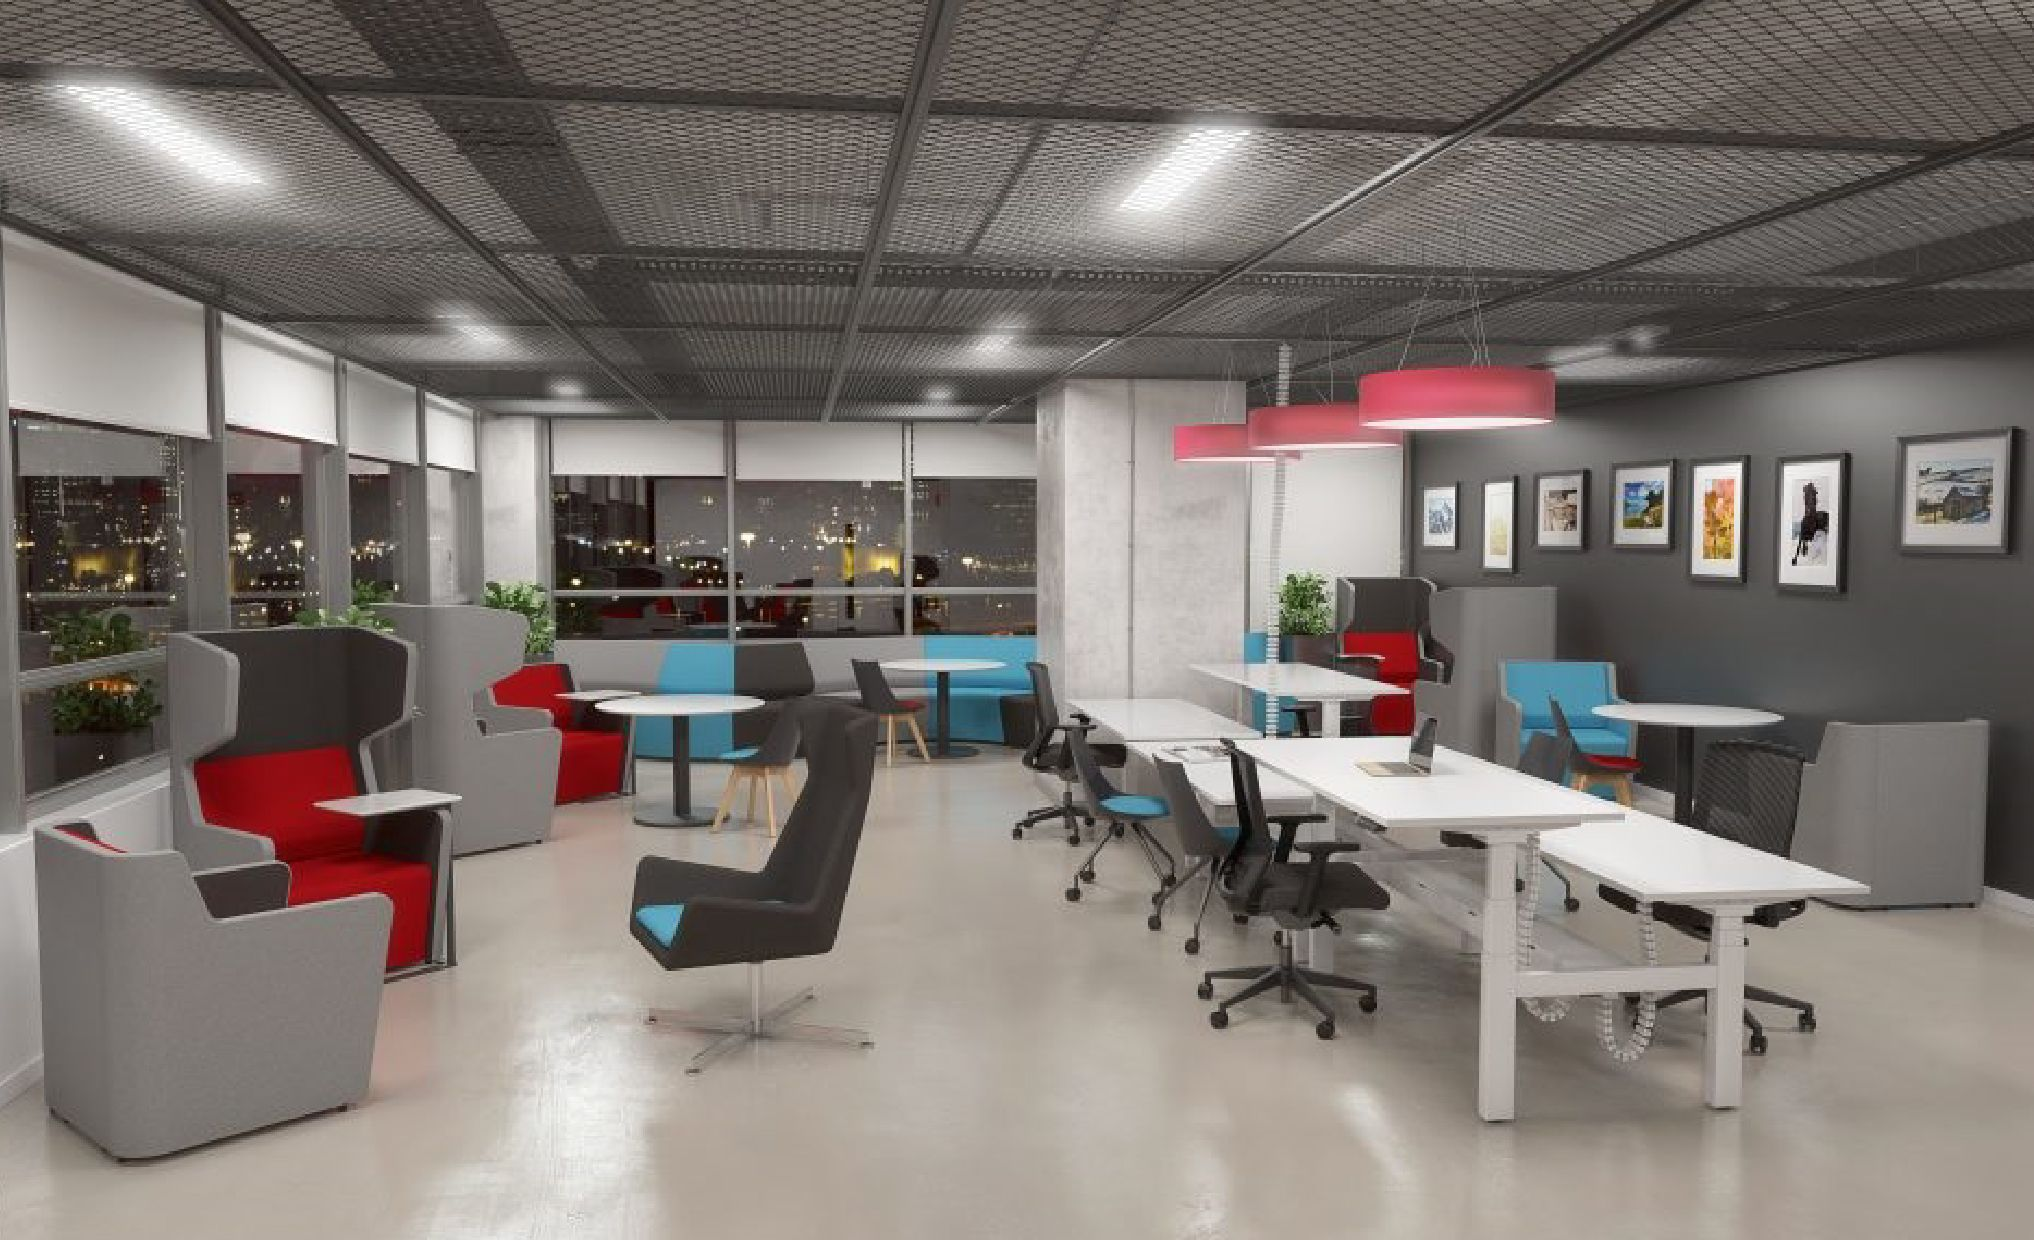 Pharmaceutical Office Space - 48 Hours